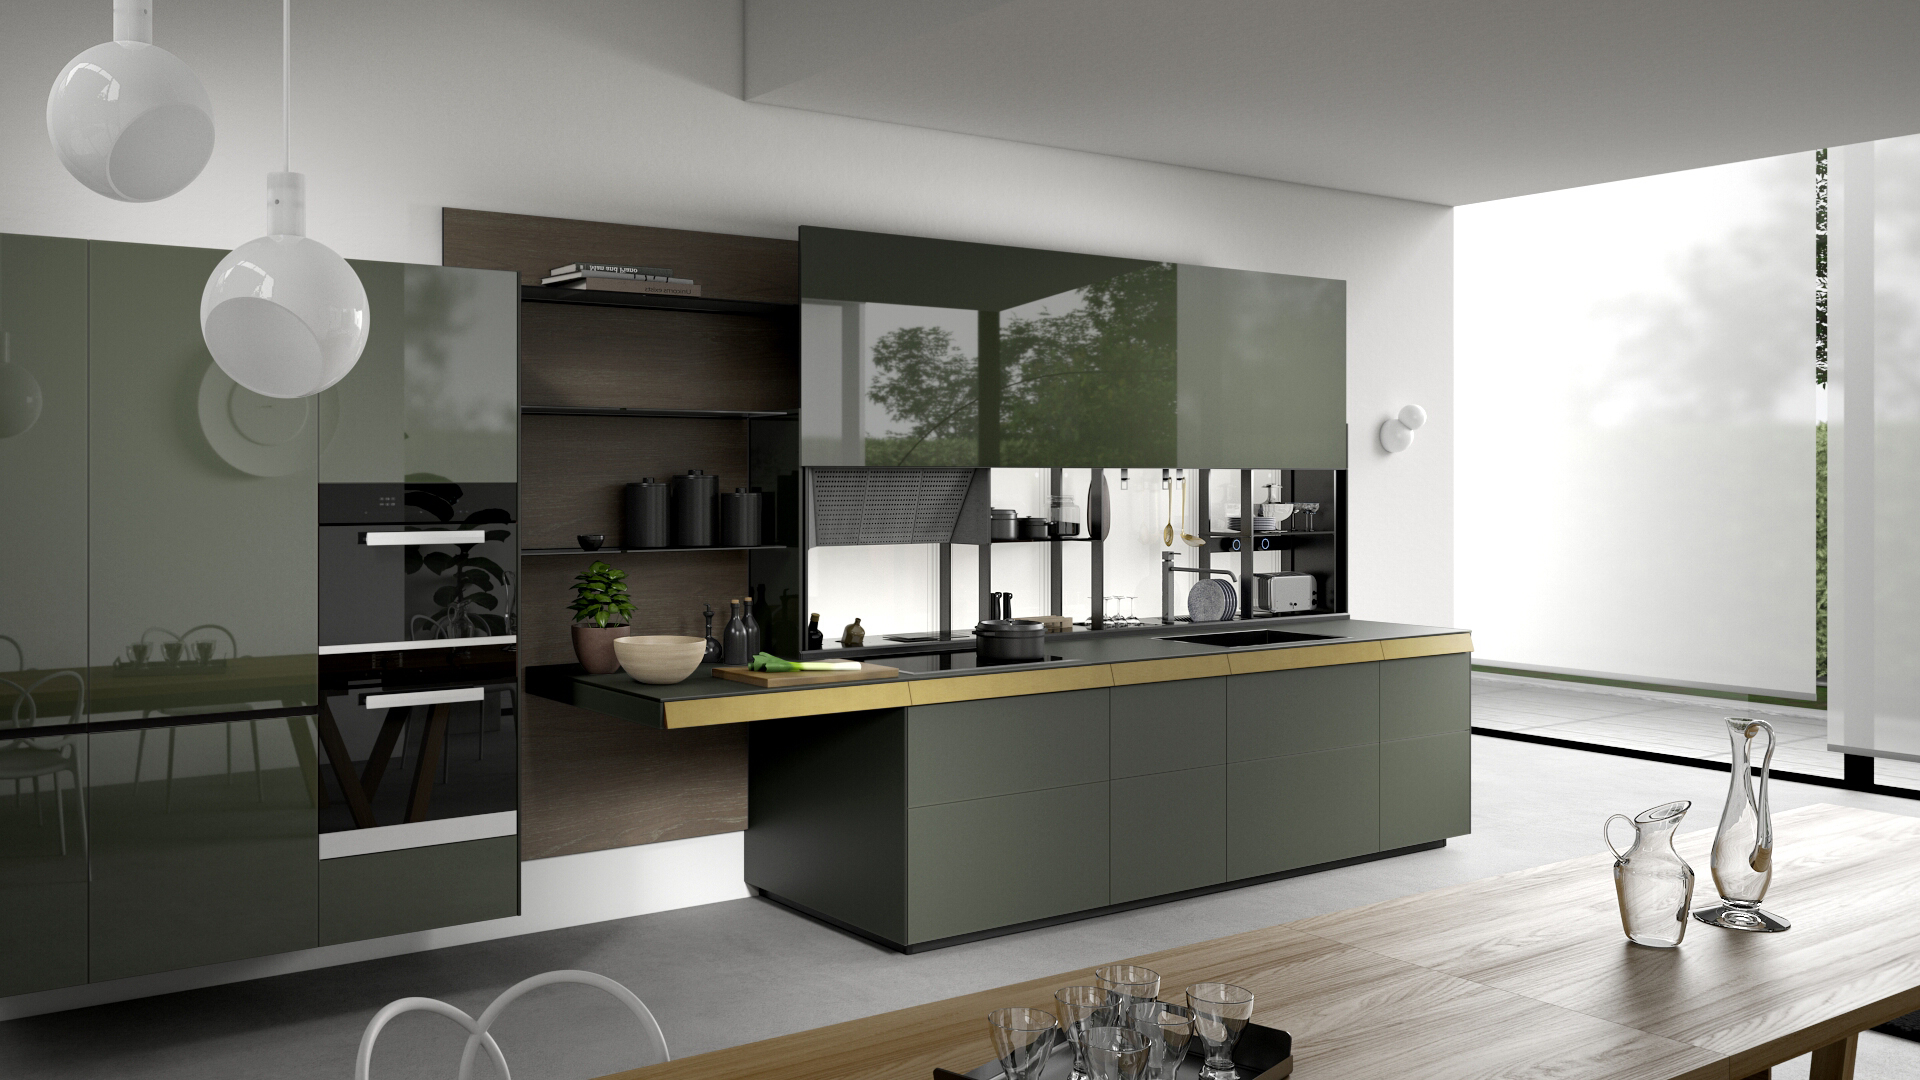 La Cucina Alessi Kitchens Valcucine Modern And Fitted Designer Italian Kitchens